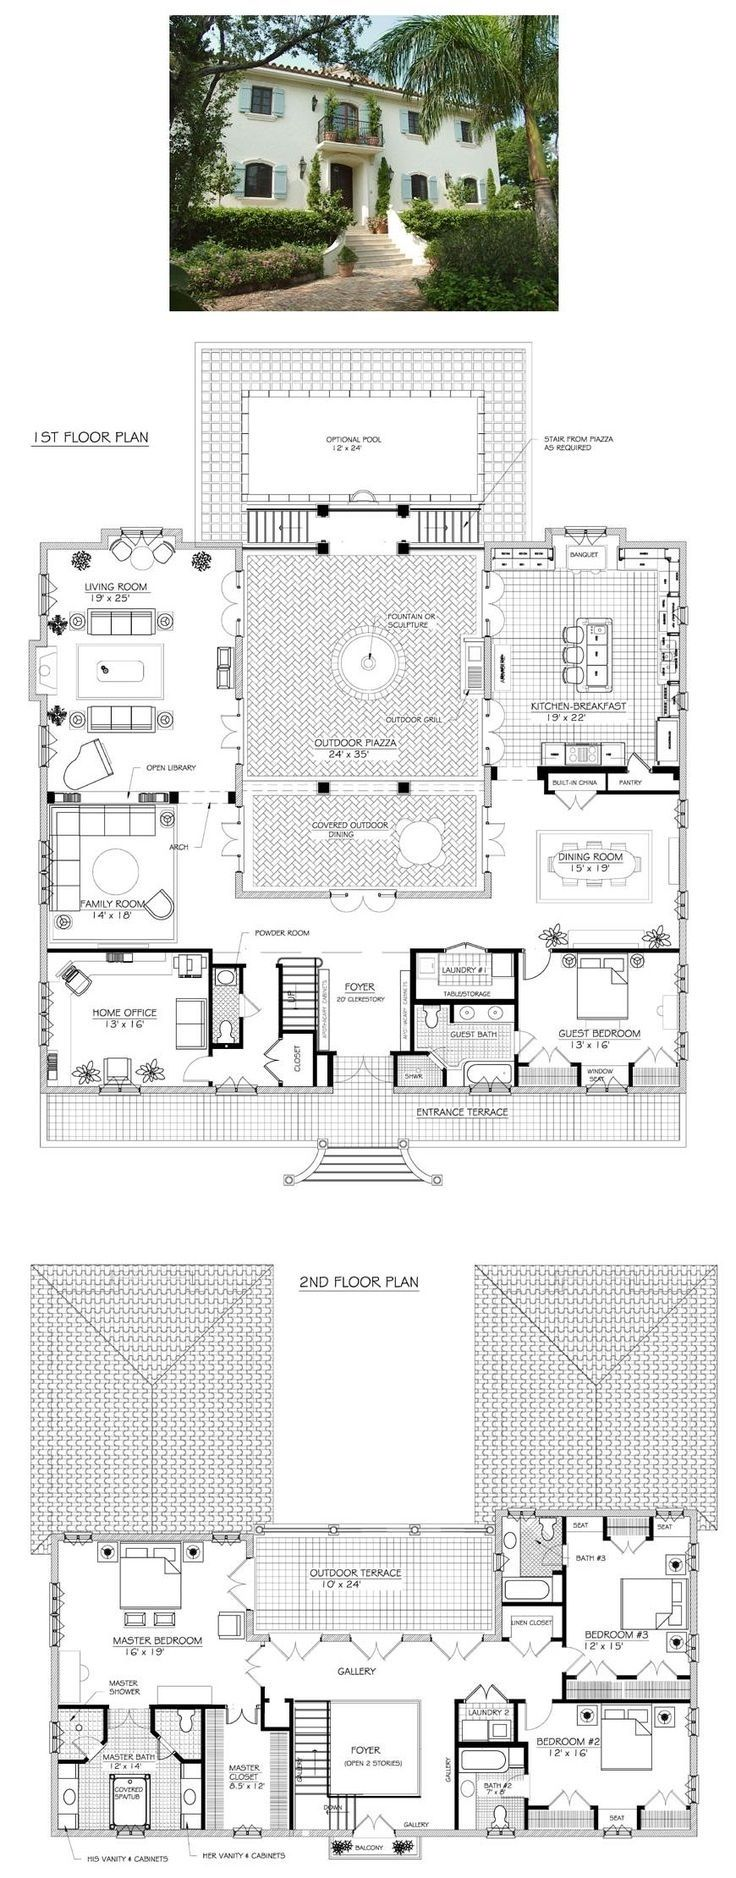 Gorgeous French Villa Plan I Fell In Love With This Plan It S My New Dream House Even Though It S New House Plans French House Plans Courtyard House Plans